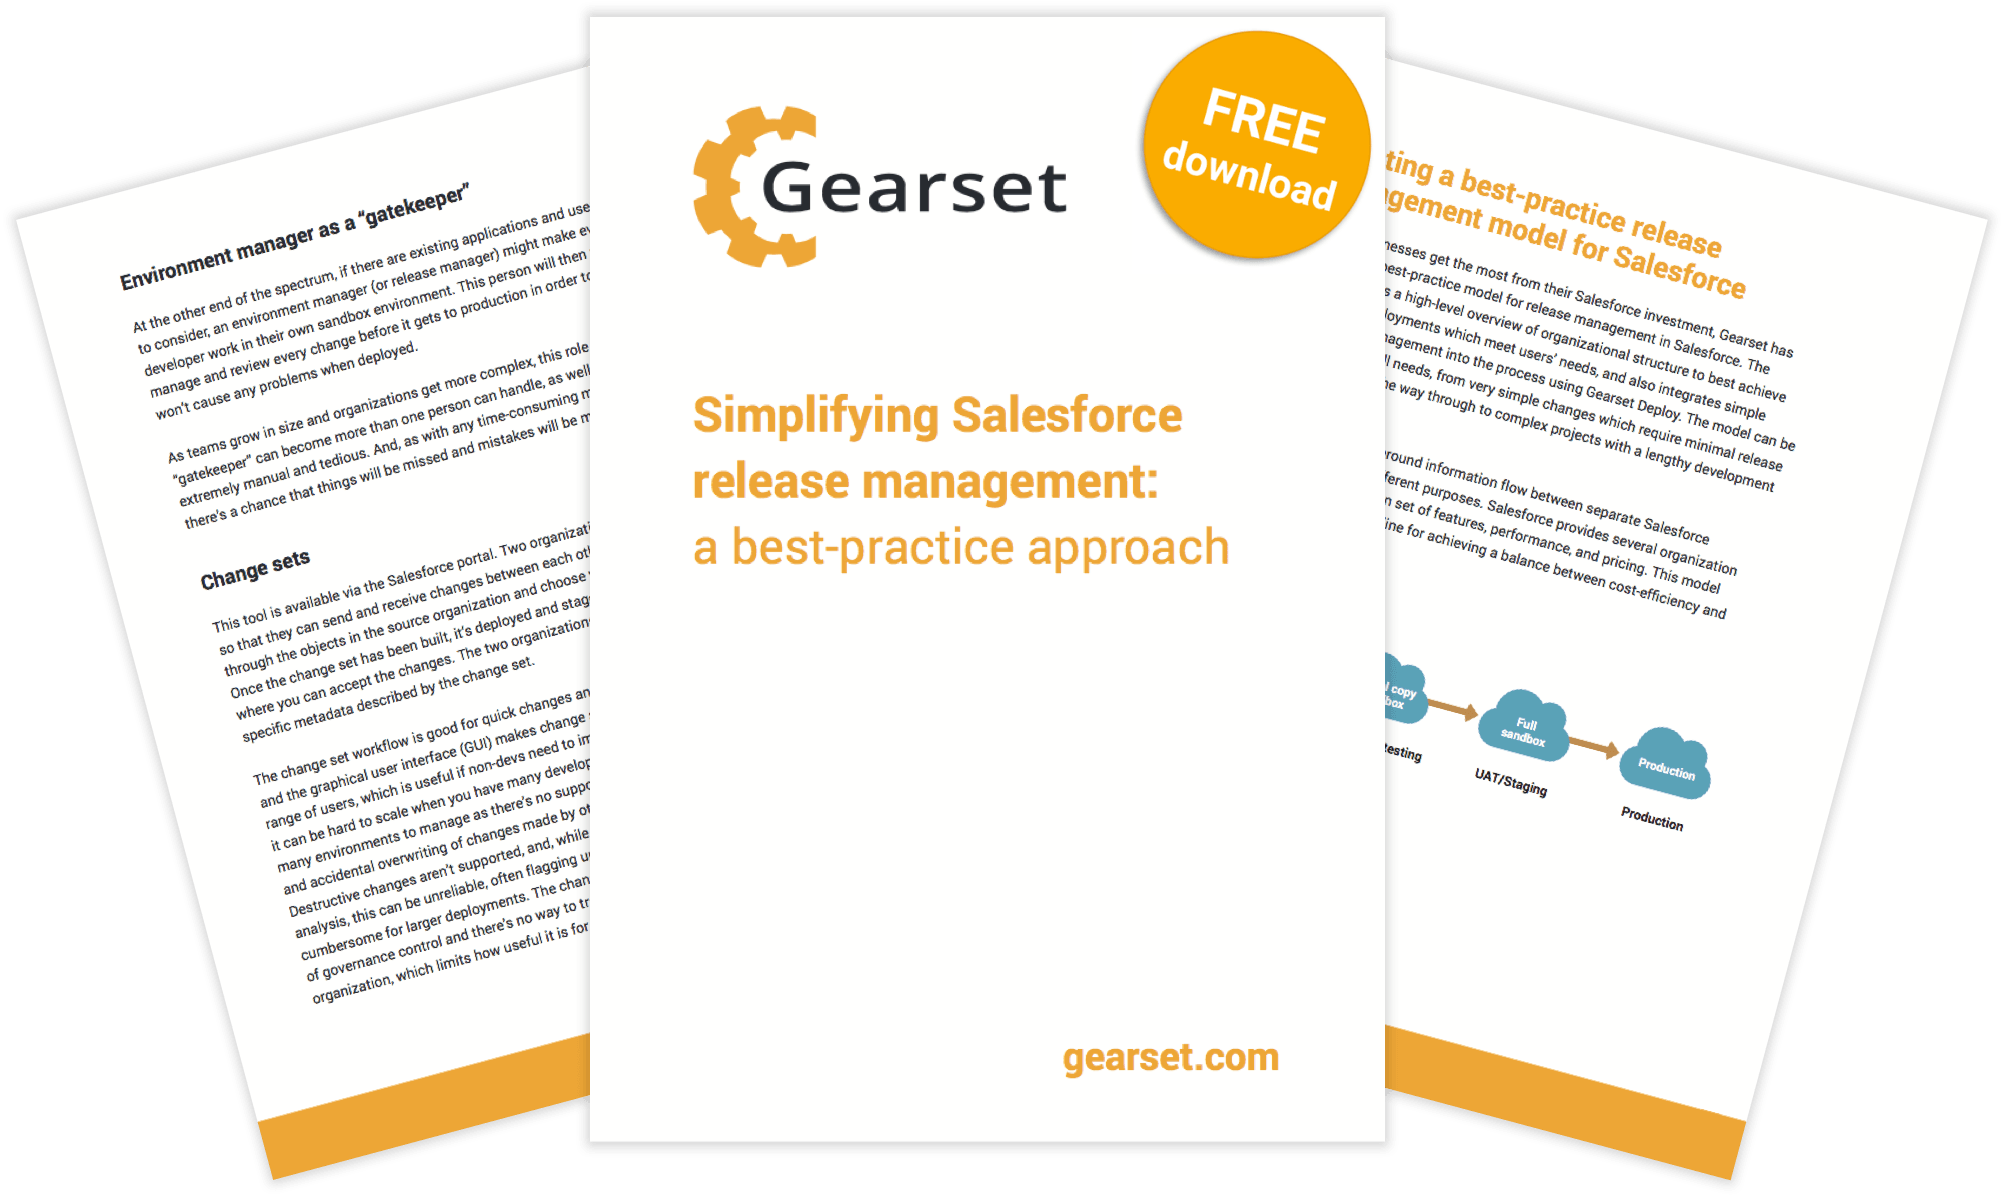 Gearset whitepaper: Simplifying Salesforce release management